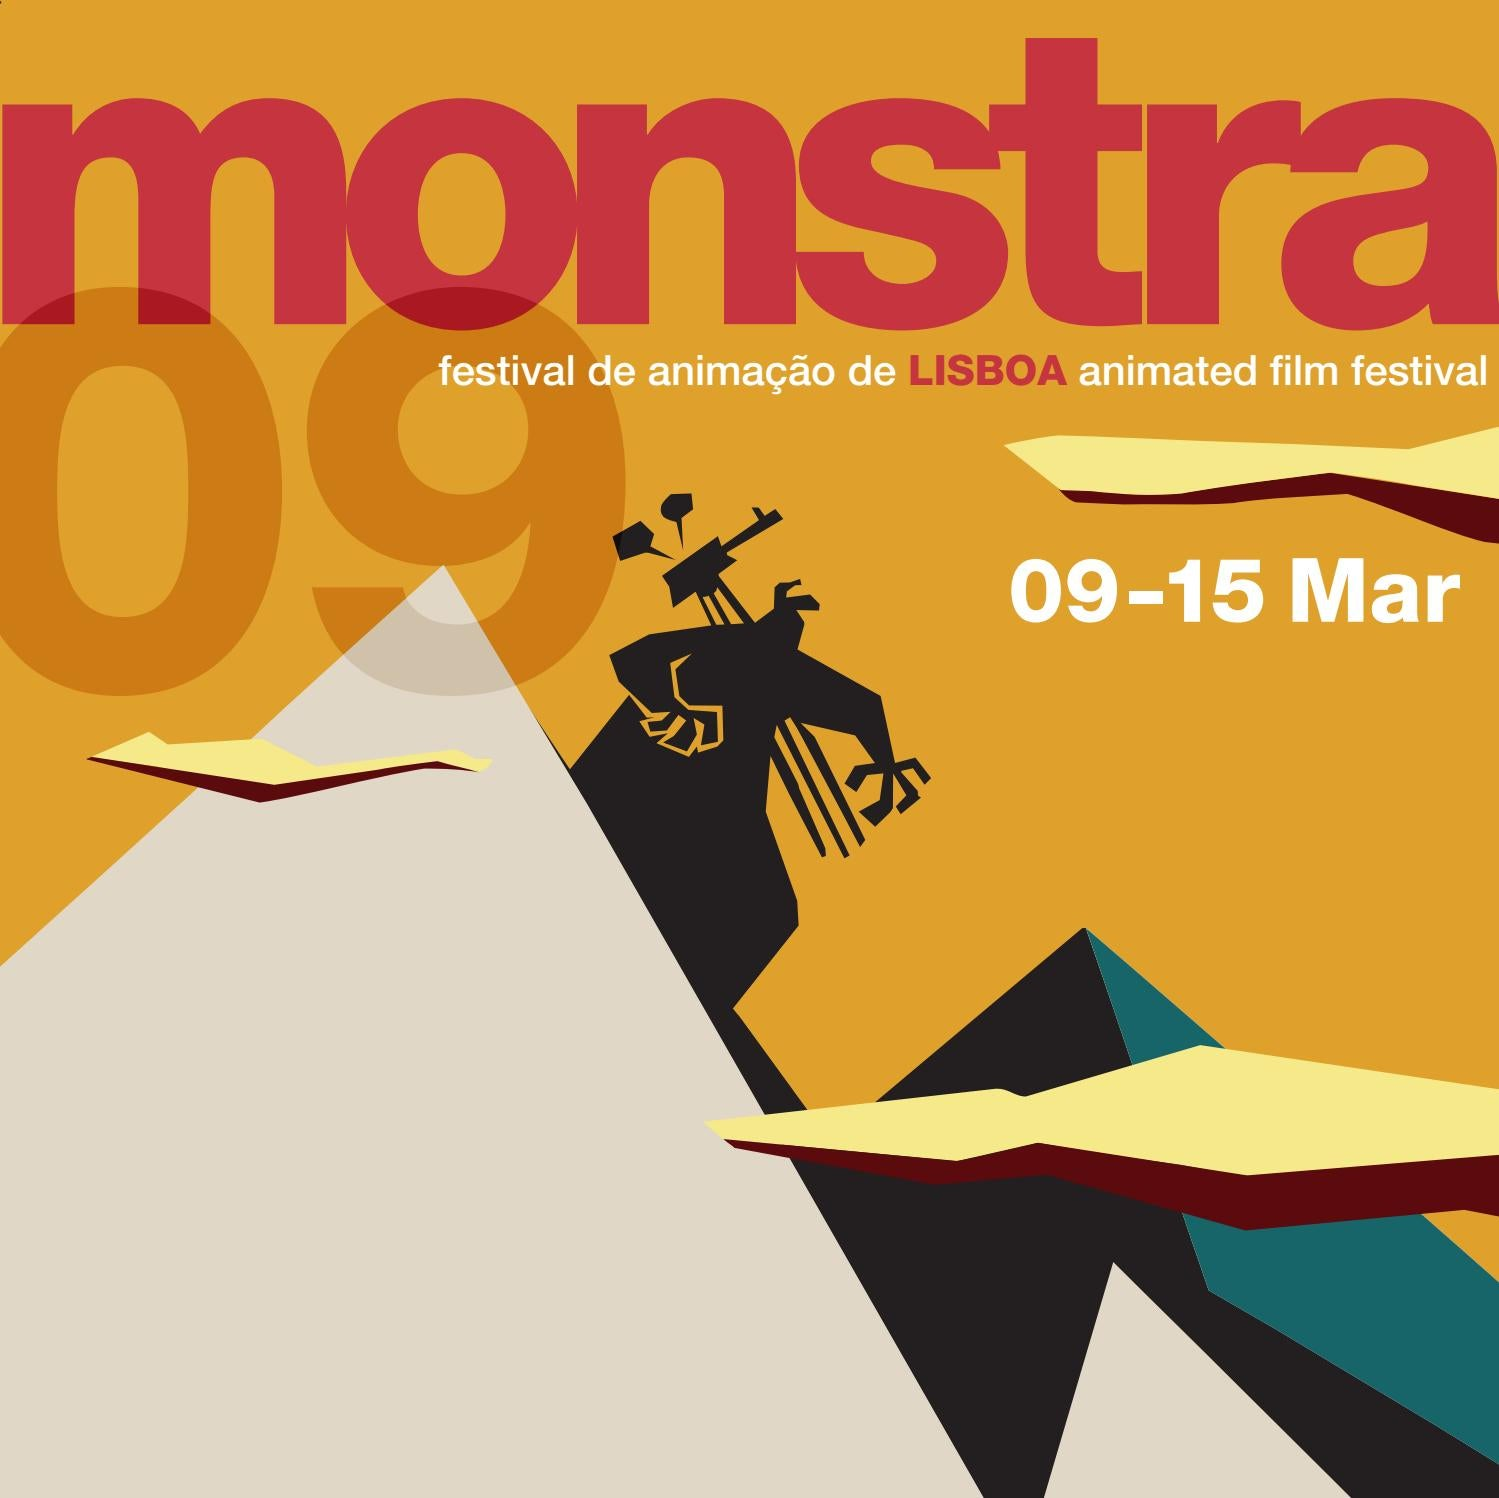 Catlogo monstra 2009 by jnrepresas issuu fandeluxe Image collections